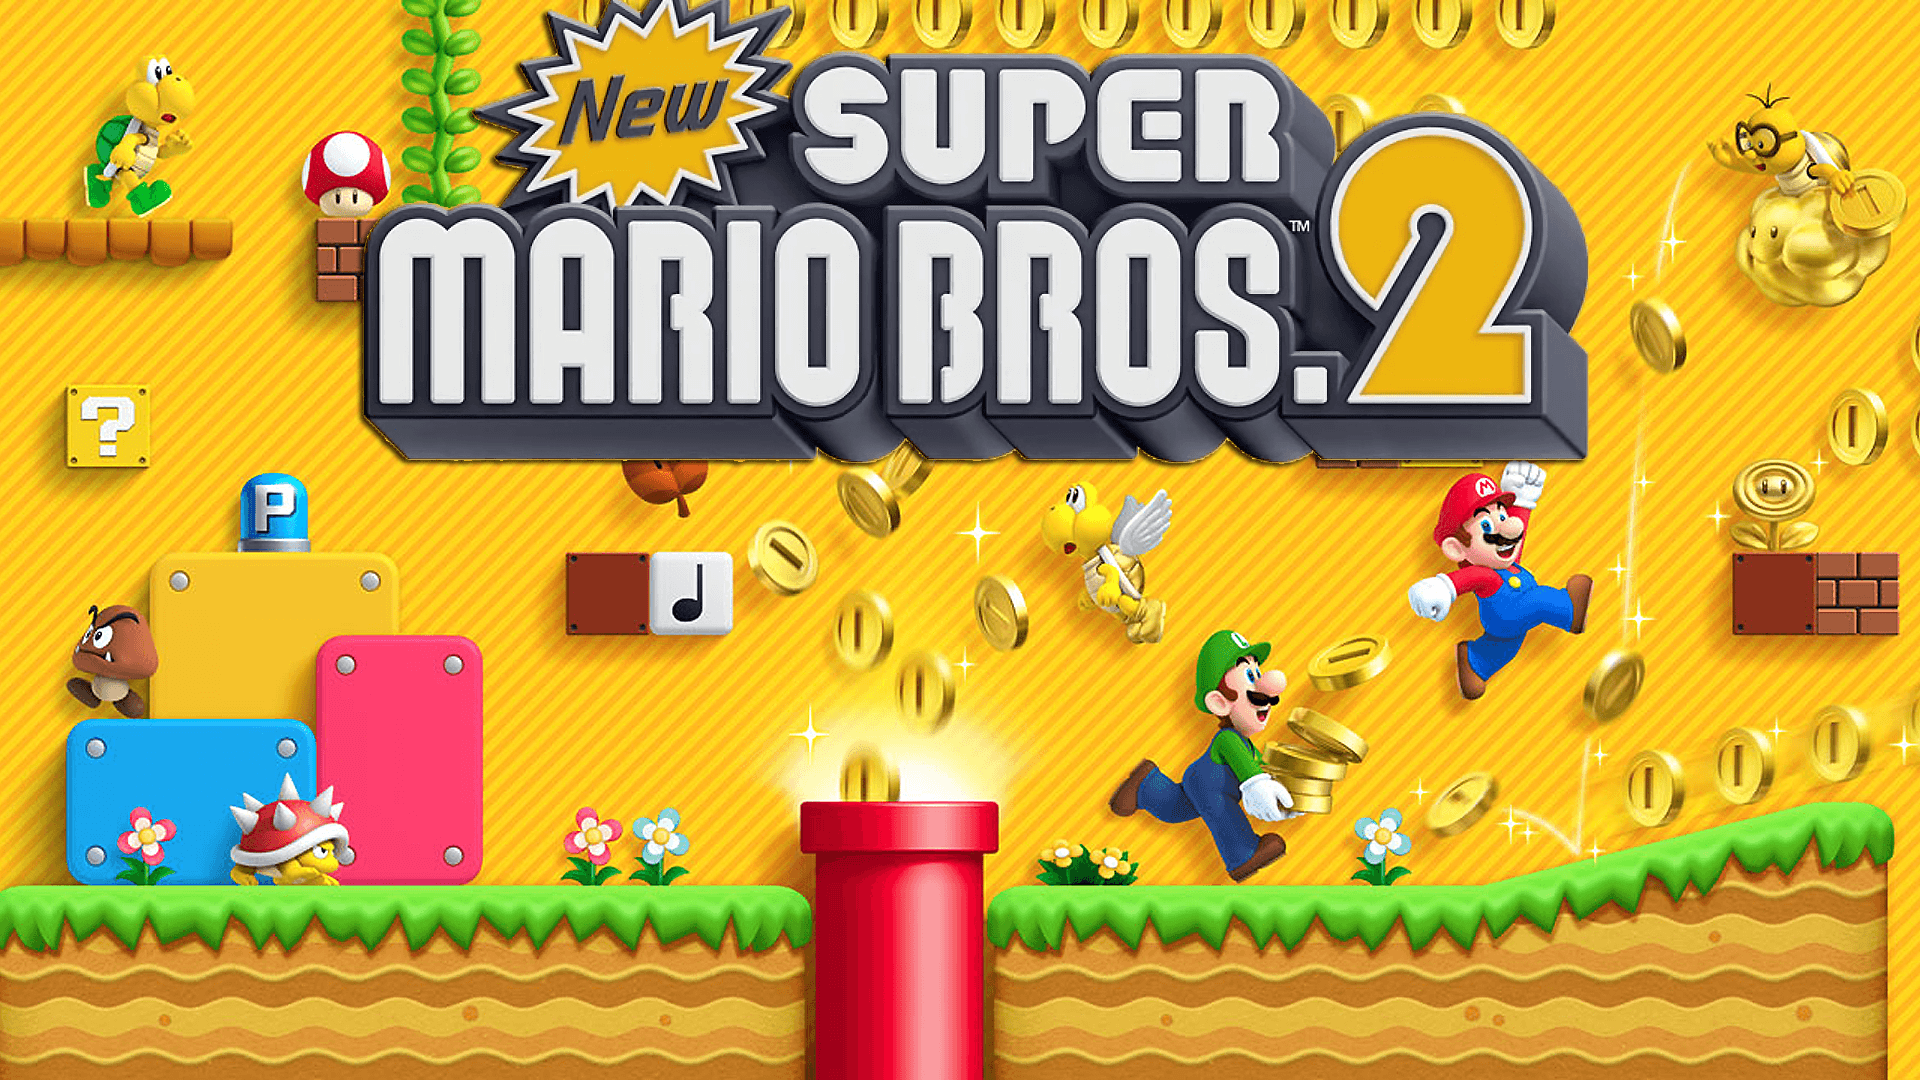 new super mario bros 2 nintendo ds rom download